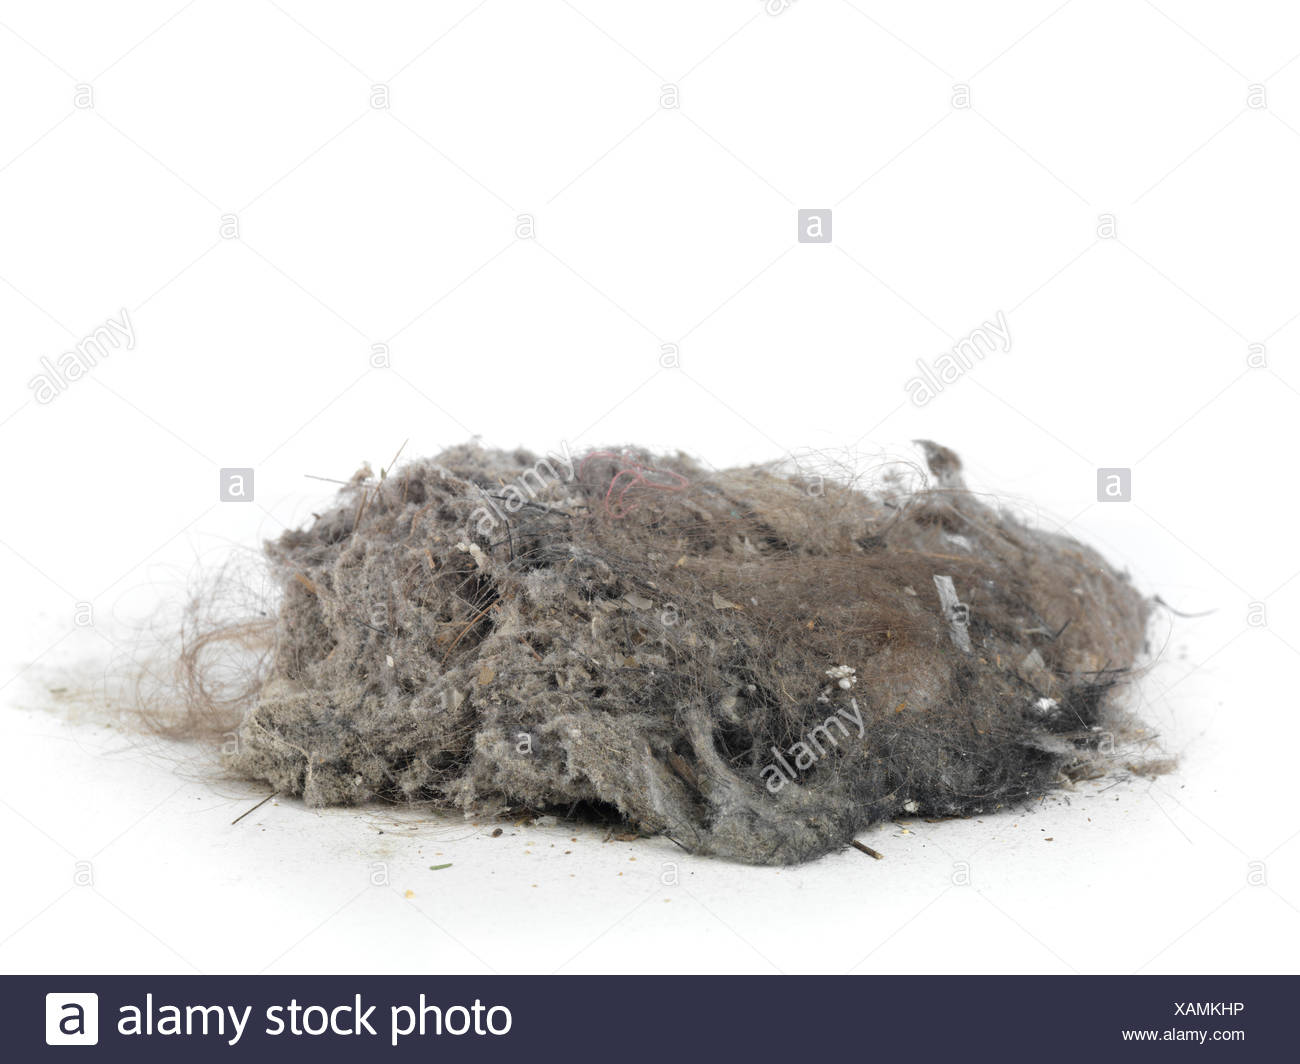 Pile of dust and hairs collected with a vacuum cleaner - Stock Image